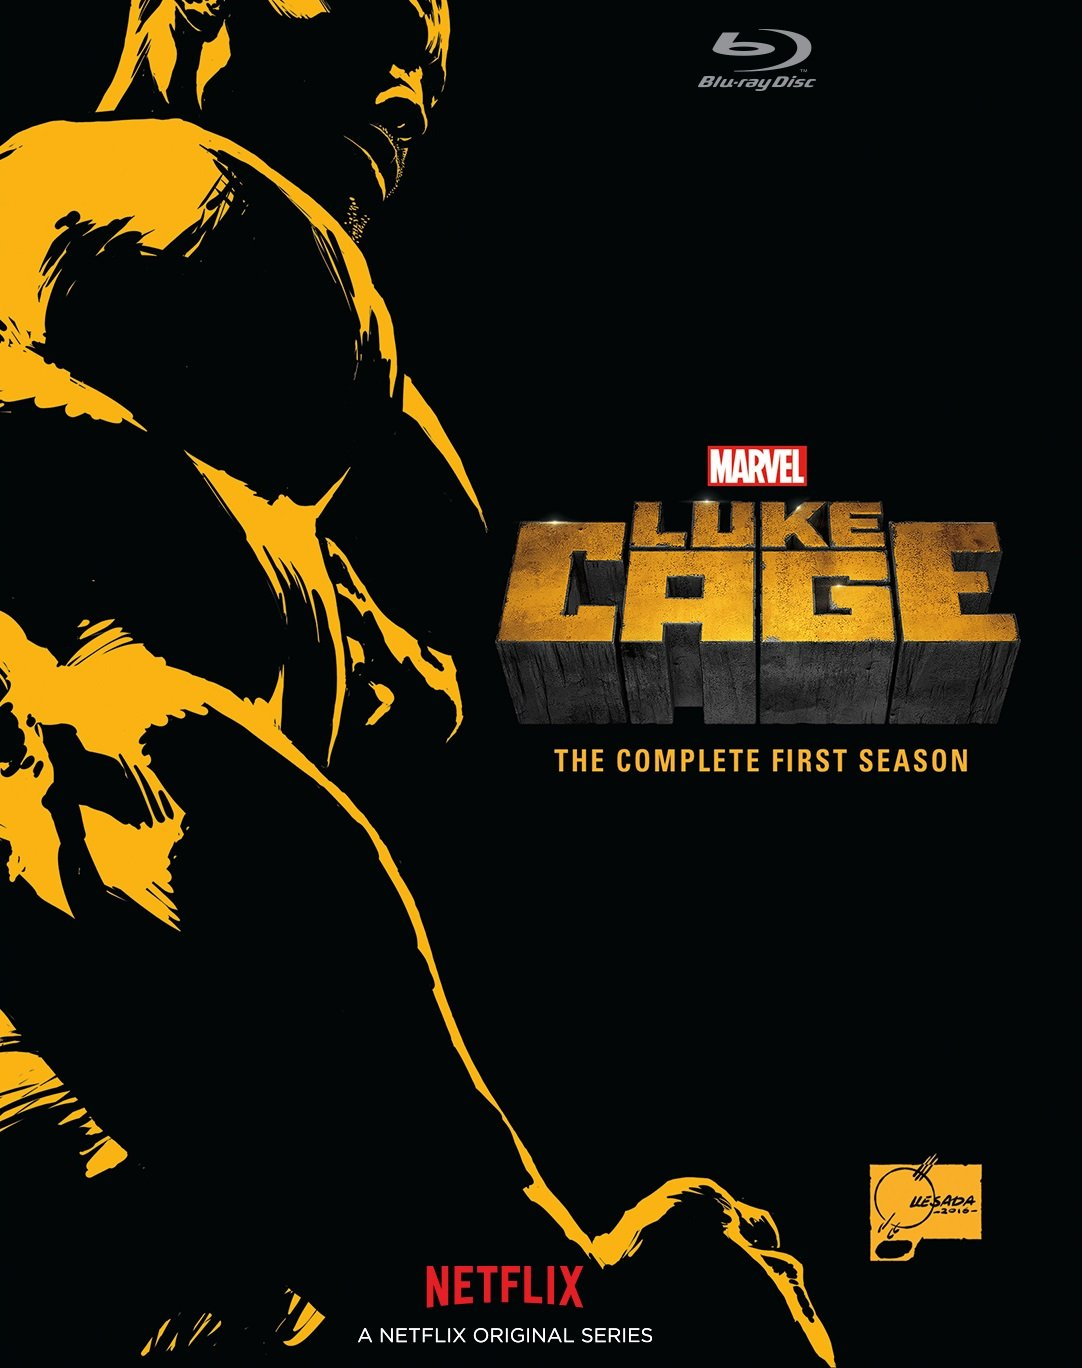 Luke Cage: The Complete First Season [Blu-ray] Mike Colter Walt Disney Video Drama Movie